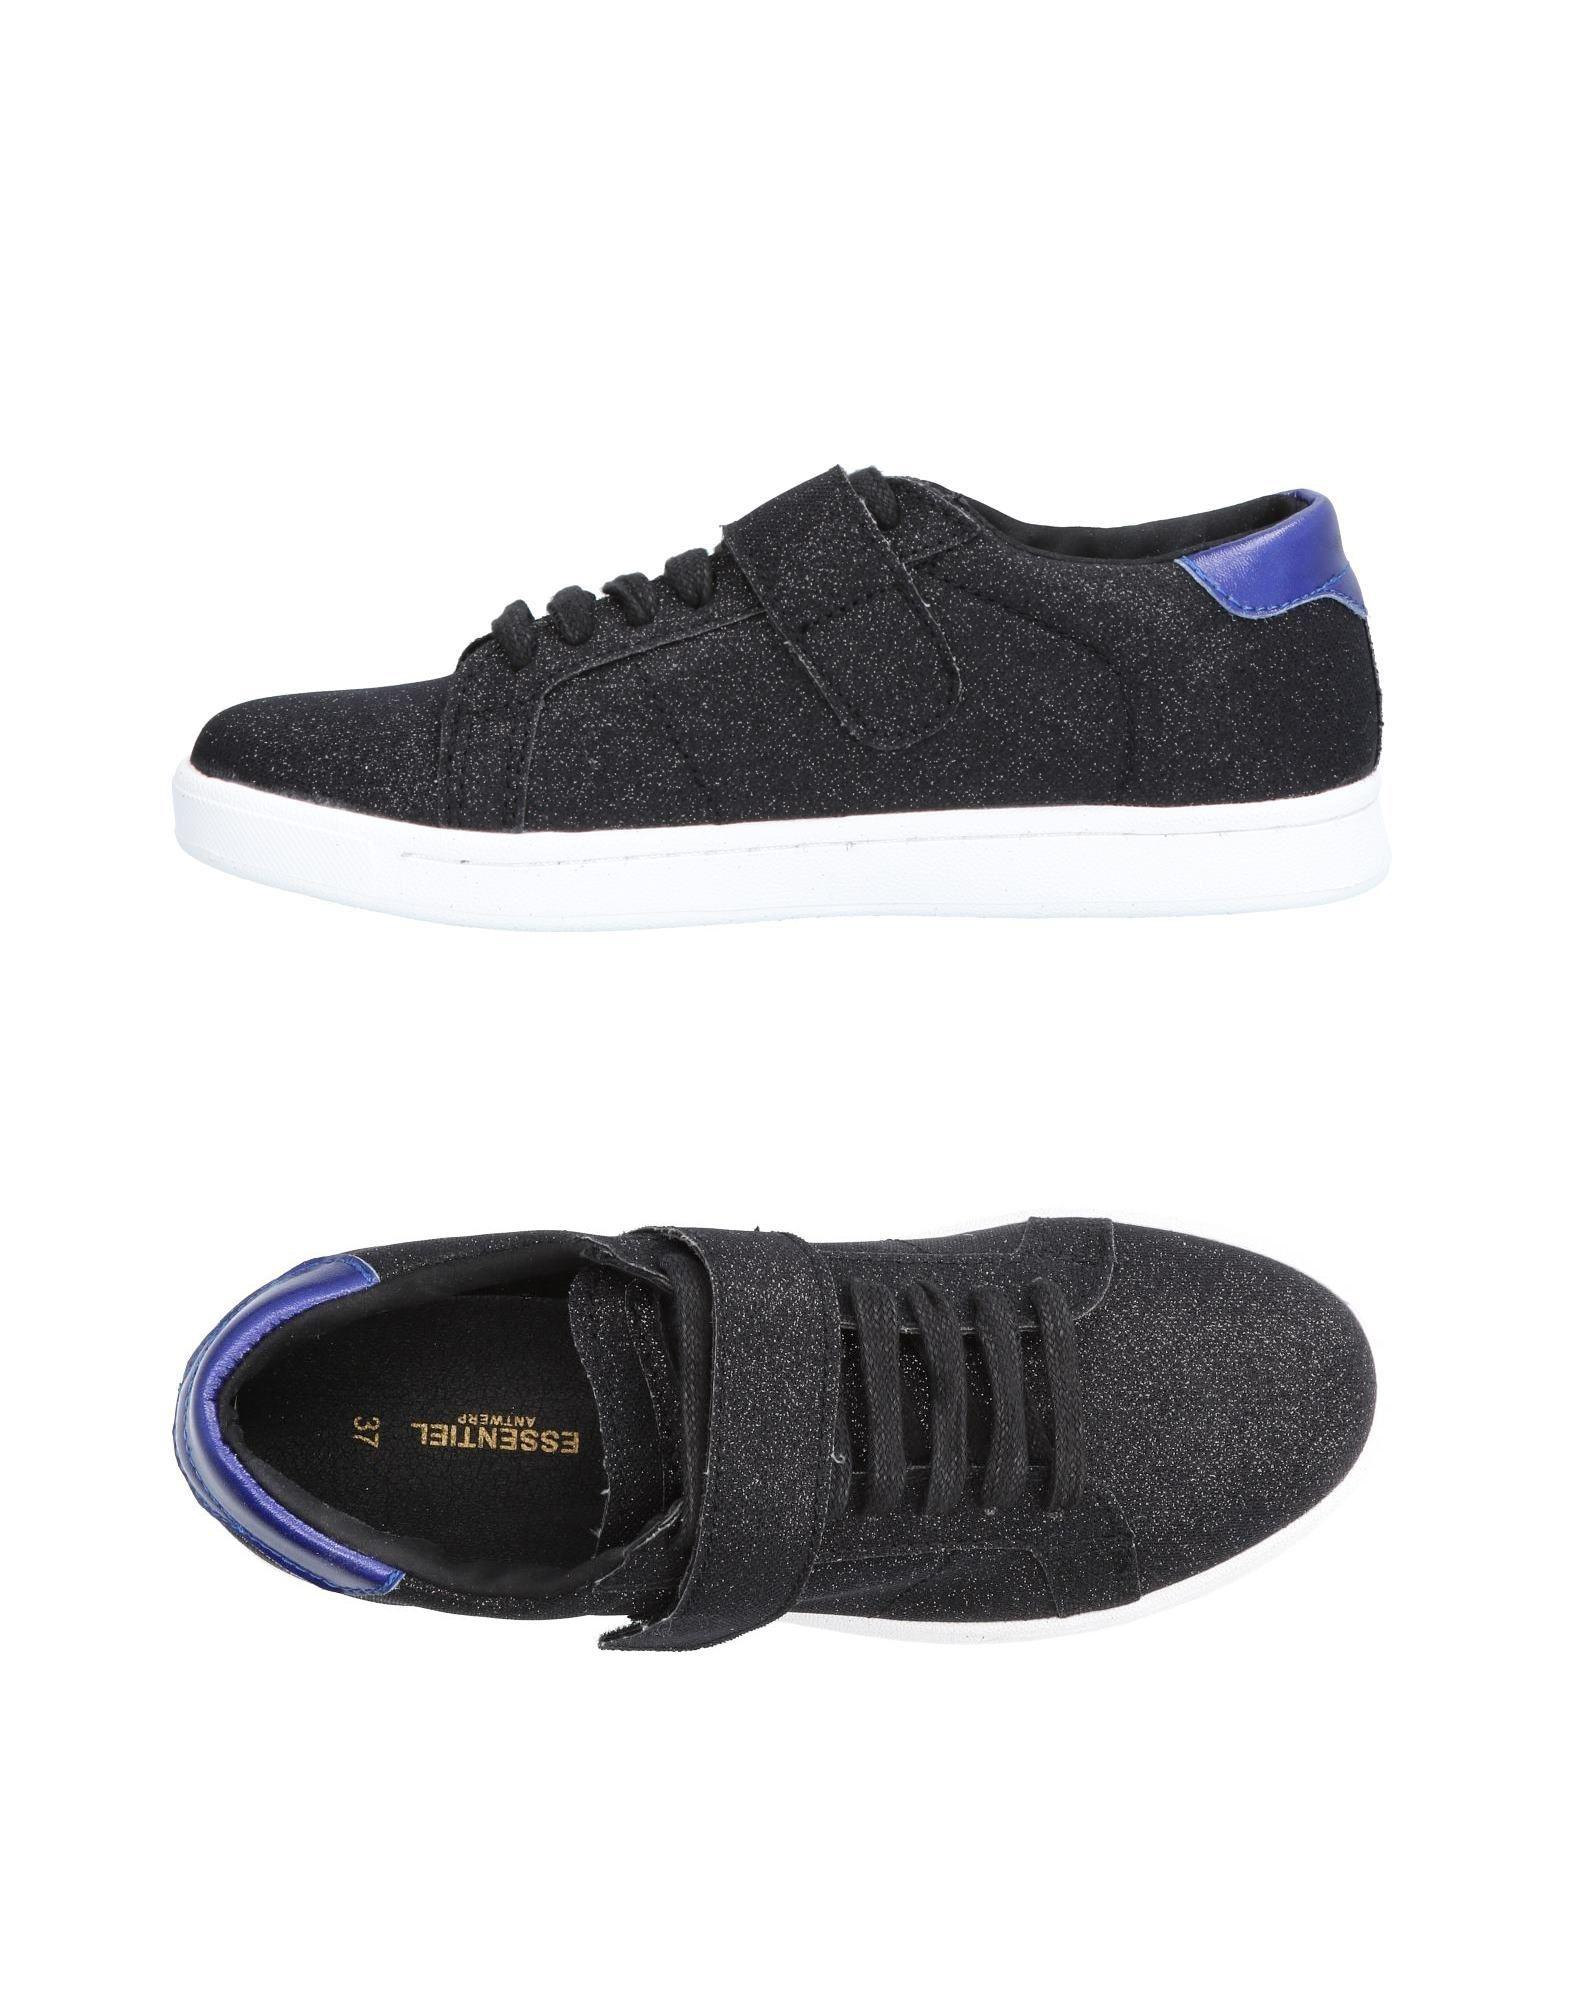 FOOTWEAR - Low-tops & sneakers Essentiel View Cheap Price fslBe1coO